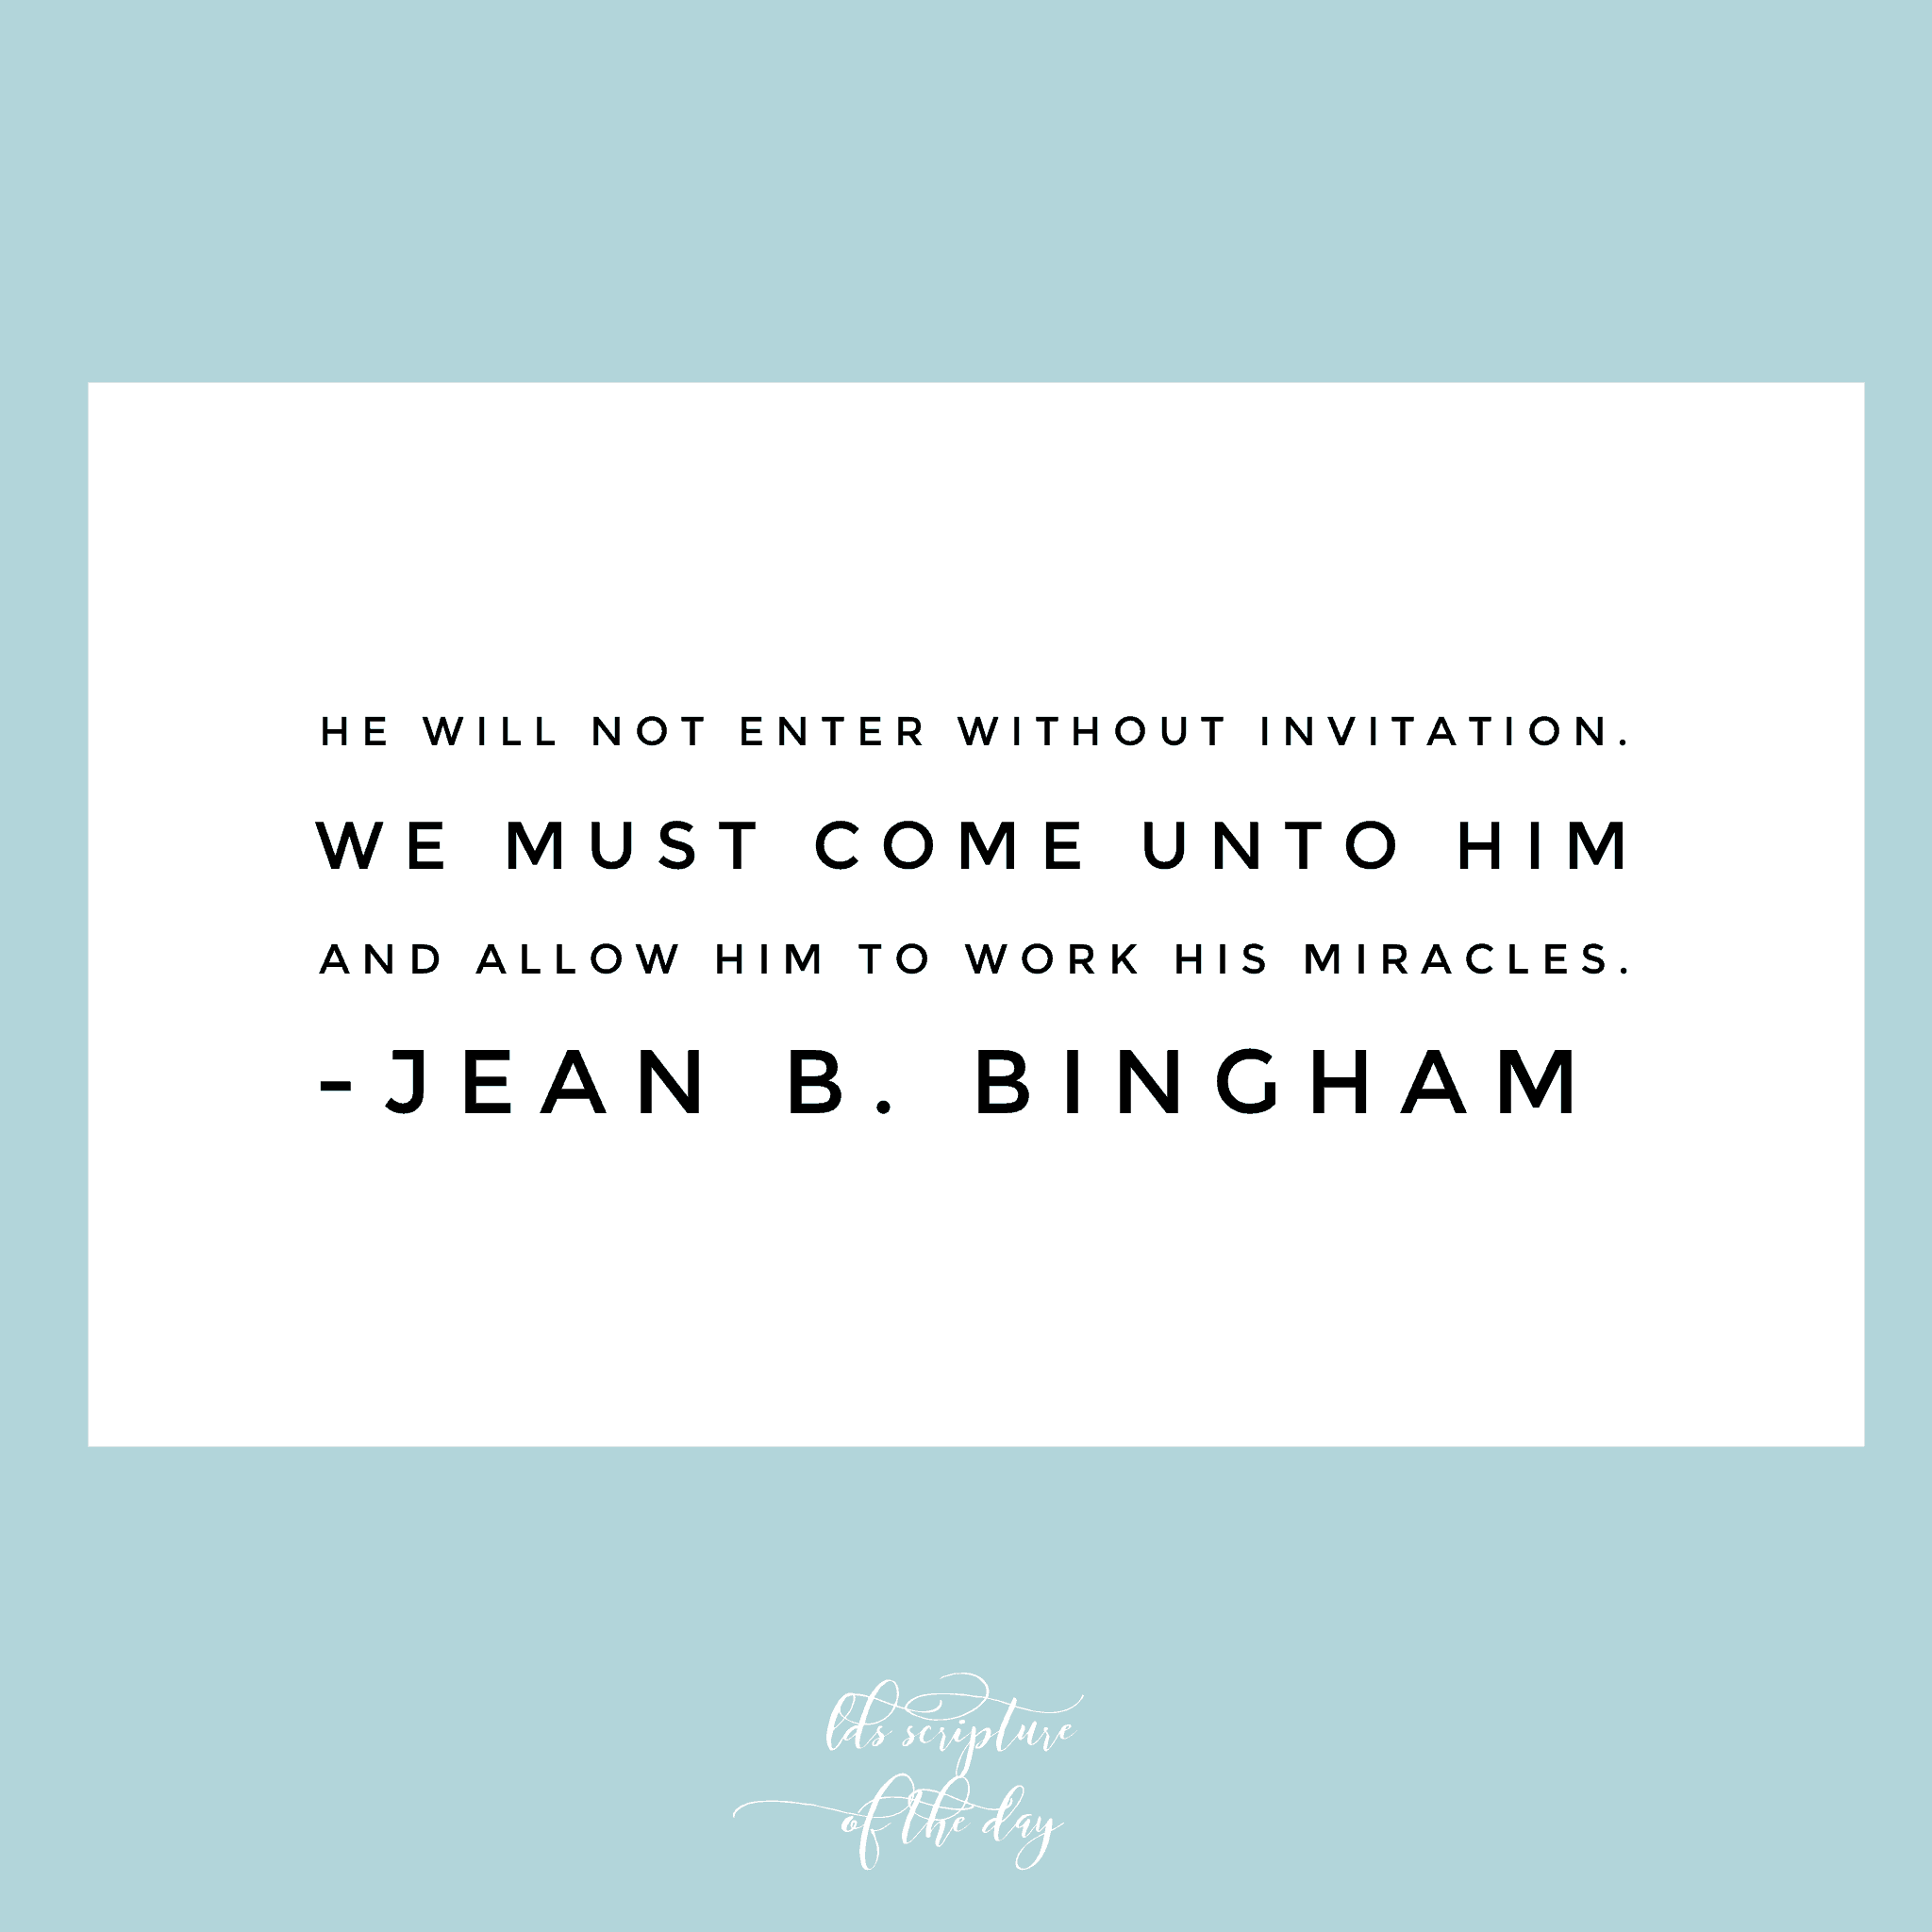 He will not enter without invitation. We must come unto Him and allow Him to work His miracles. —Jean B. Bingham